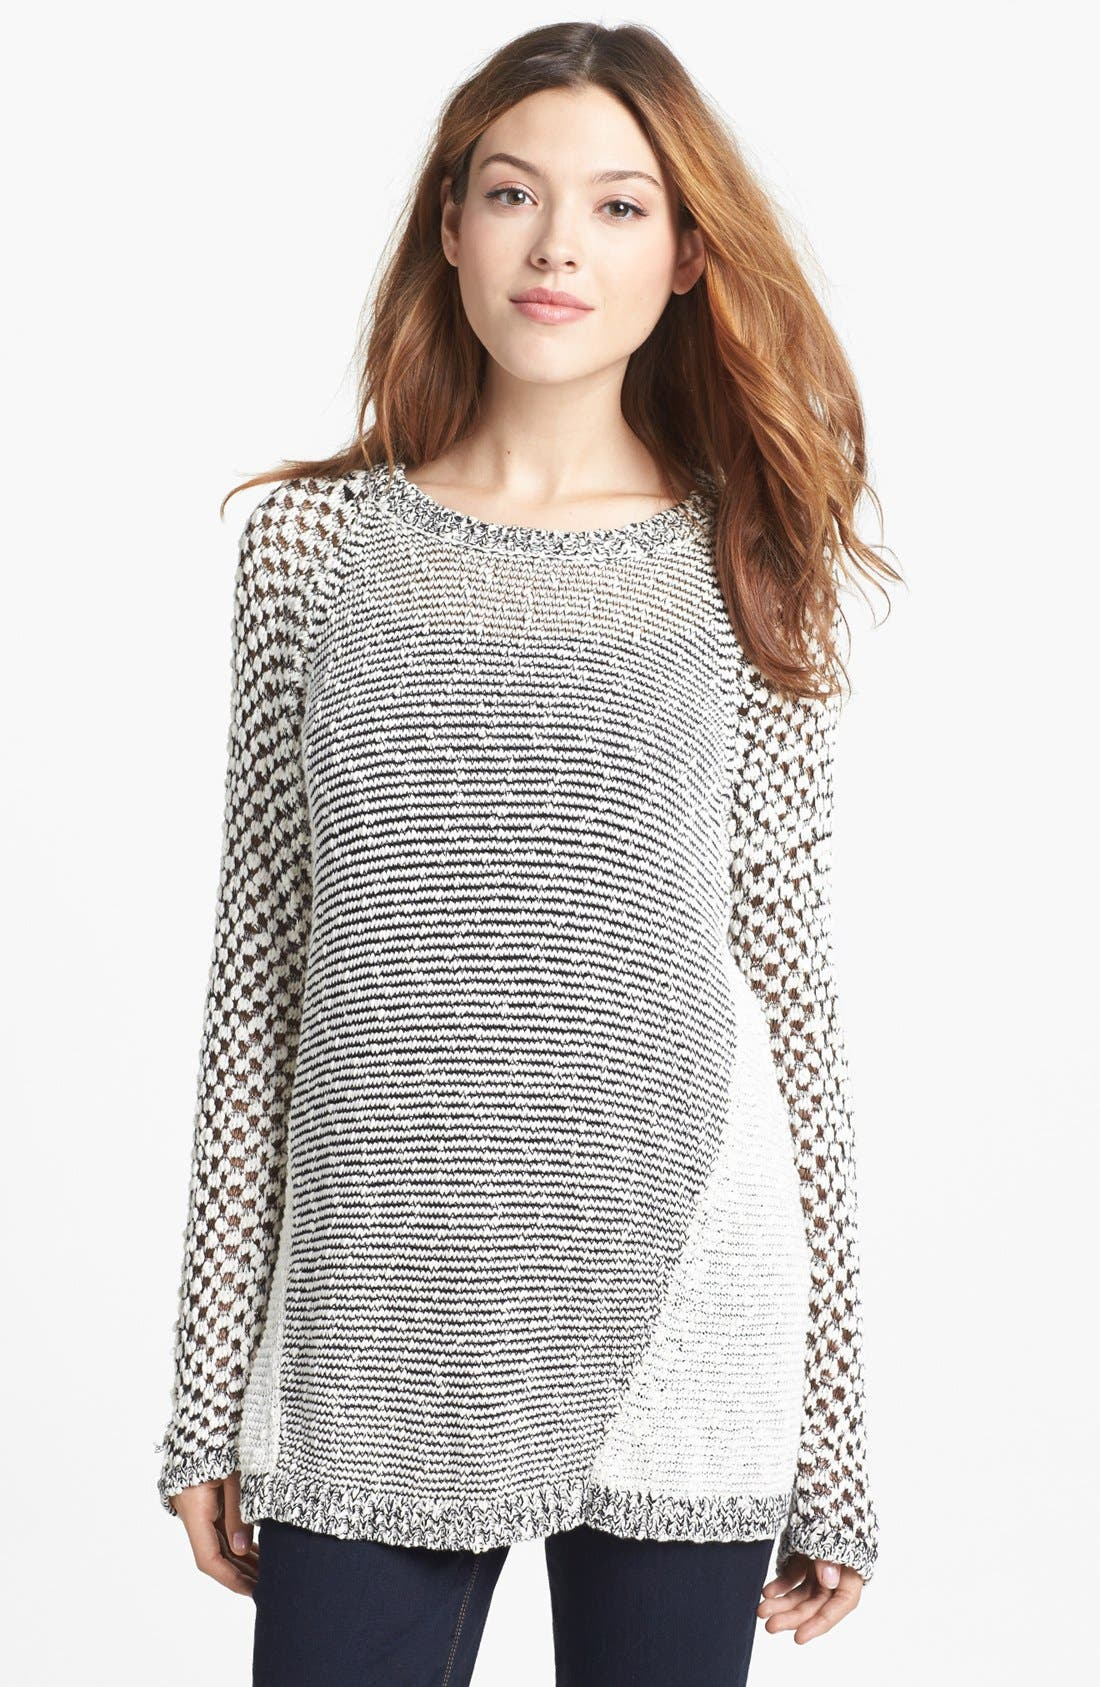 Alternate Image 1 Selected - Two by Vince Camuto Mixed Stitch Crewneck Sweater (Petite)